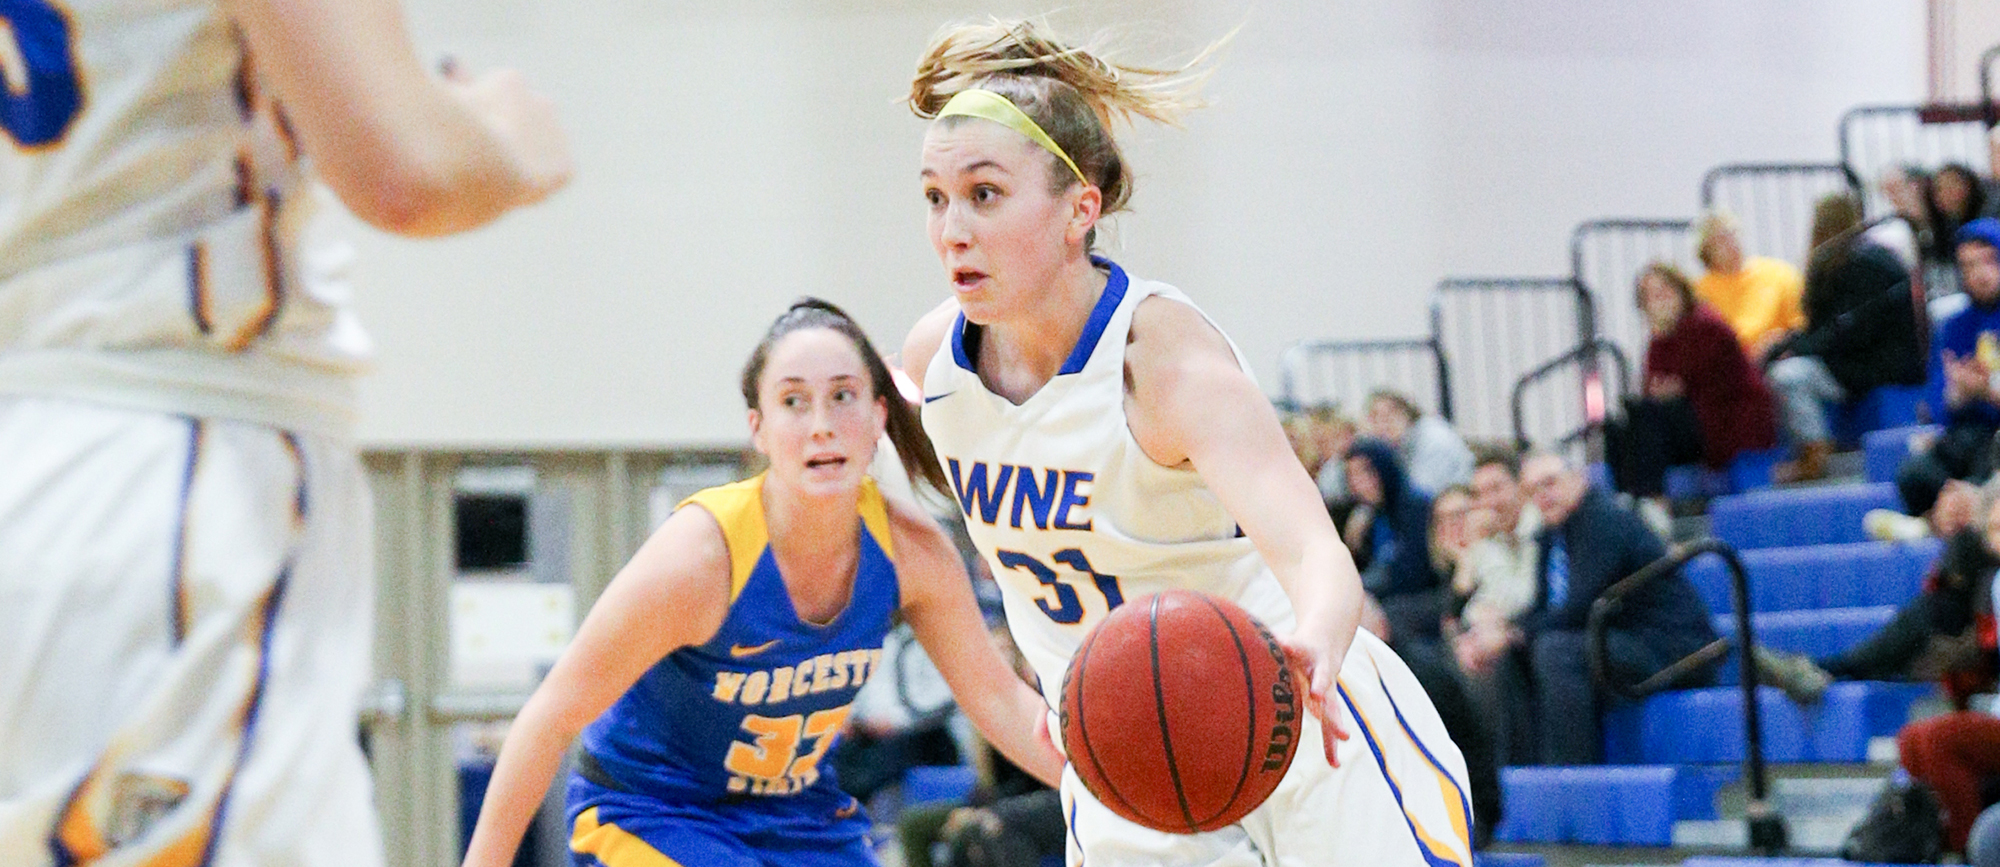 Meghan Orbann registered her 9th career double-double (13 points, 11 rebounds, 4 assists, 1 steal) as Western New England defeated Roger Williams 60-49 on Saturday. (Photo by Chris Marion)